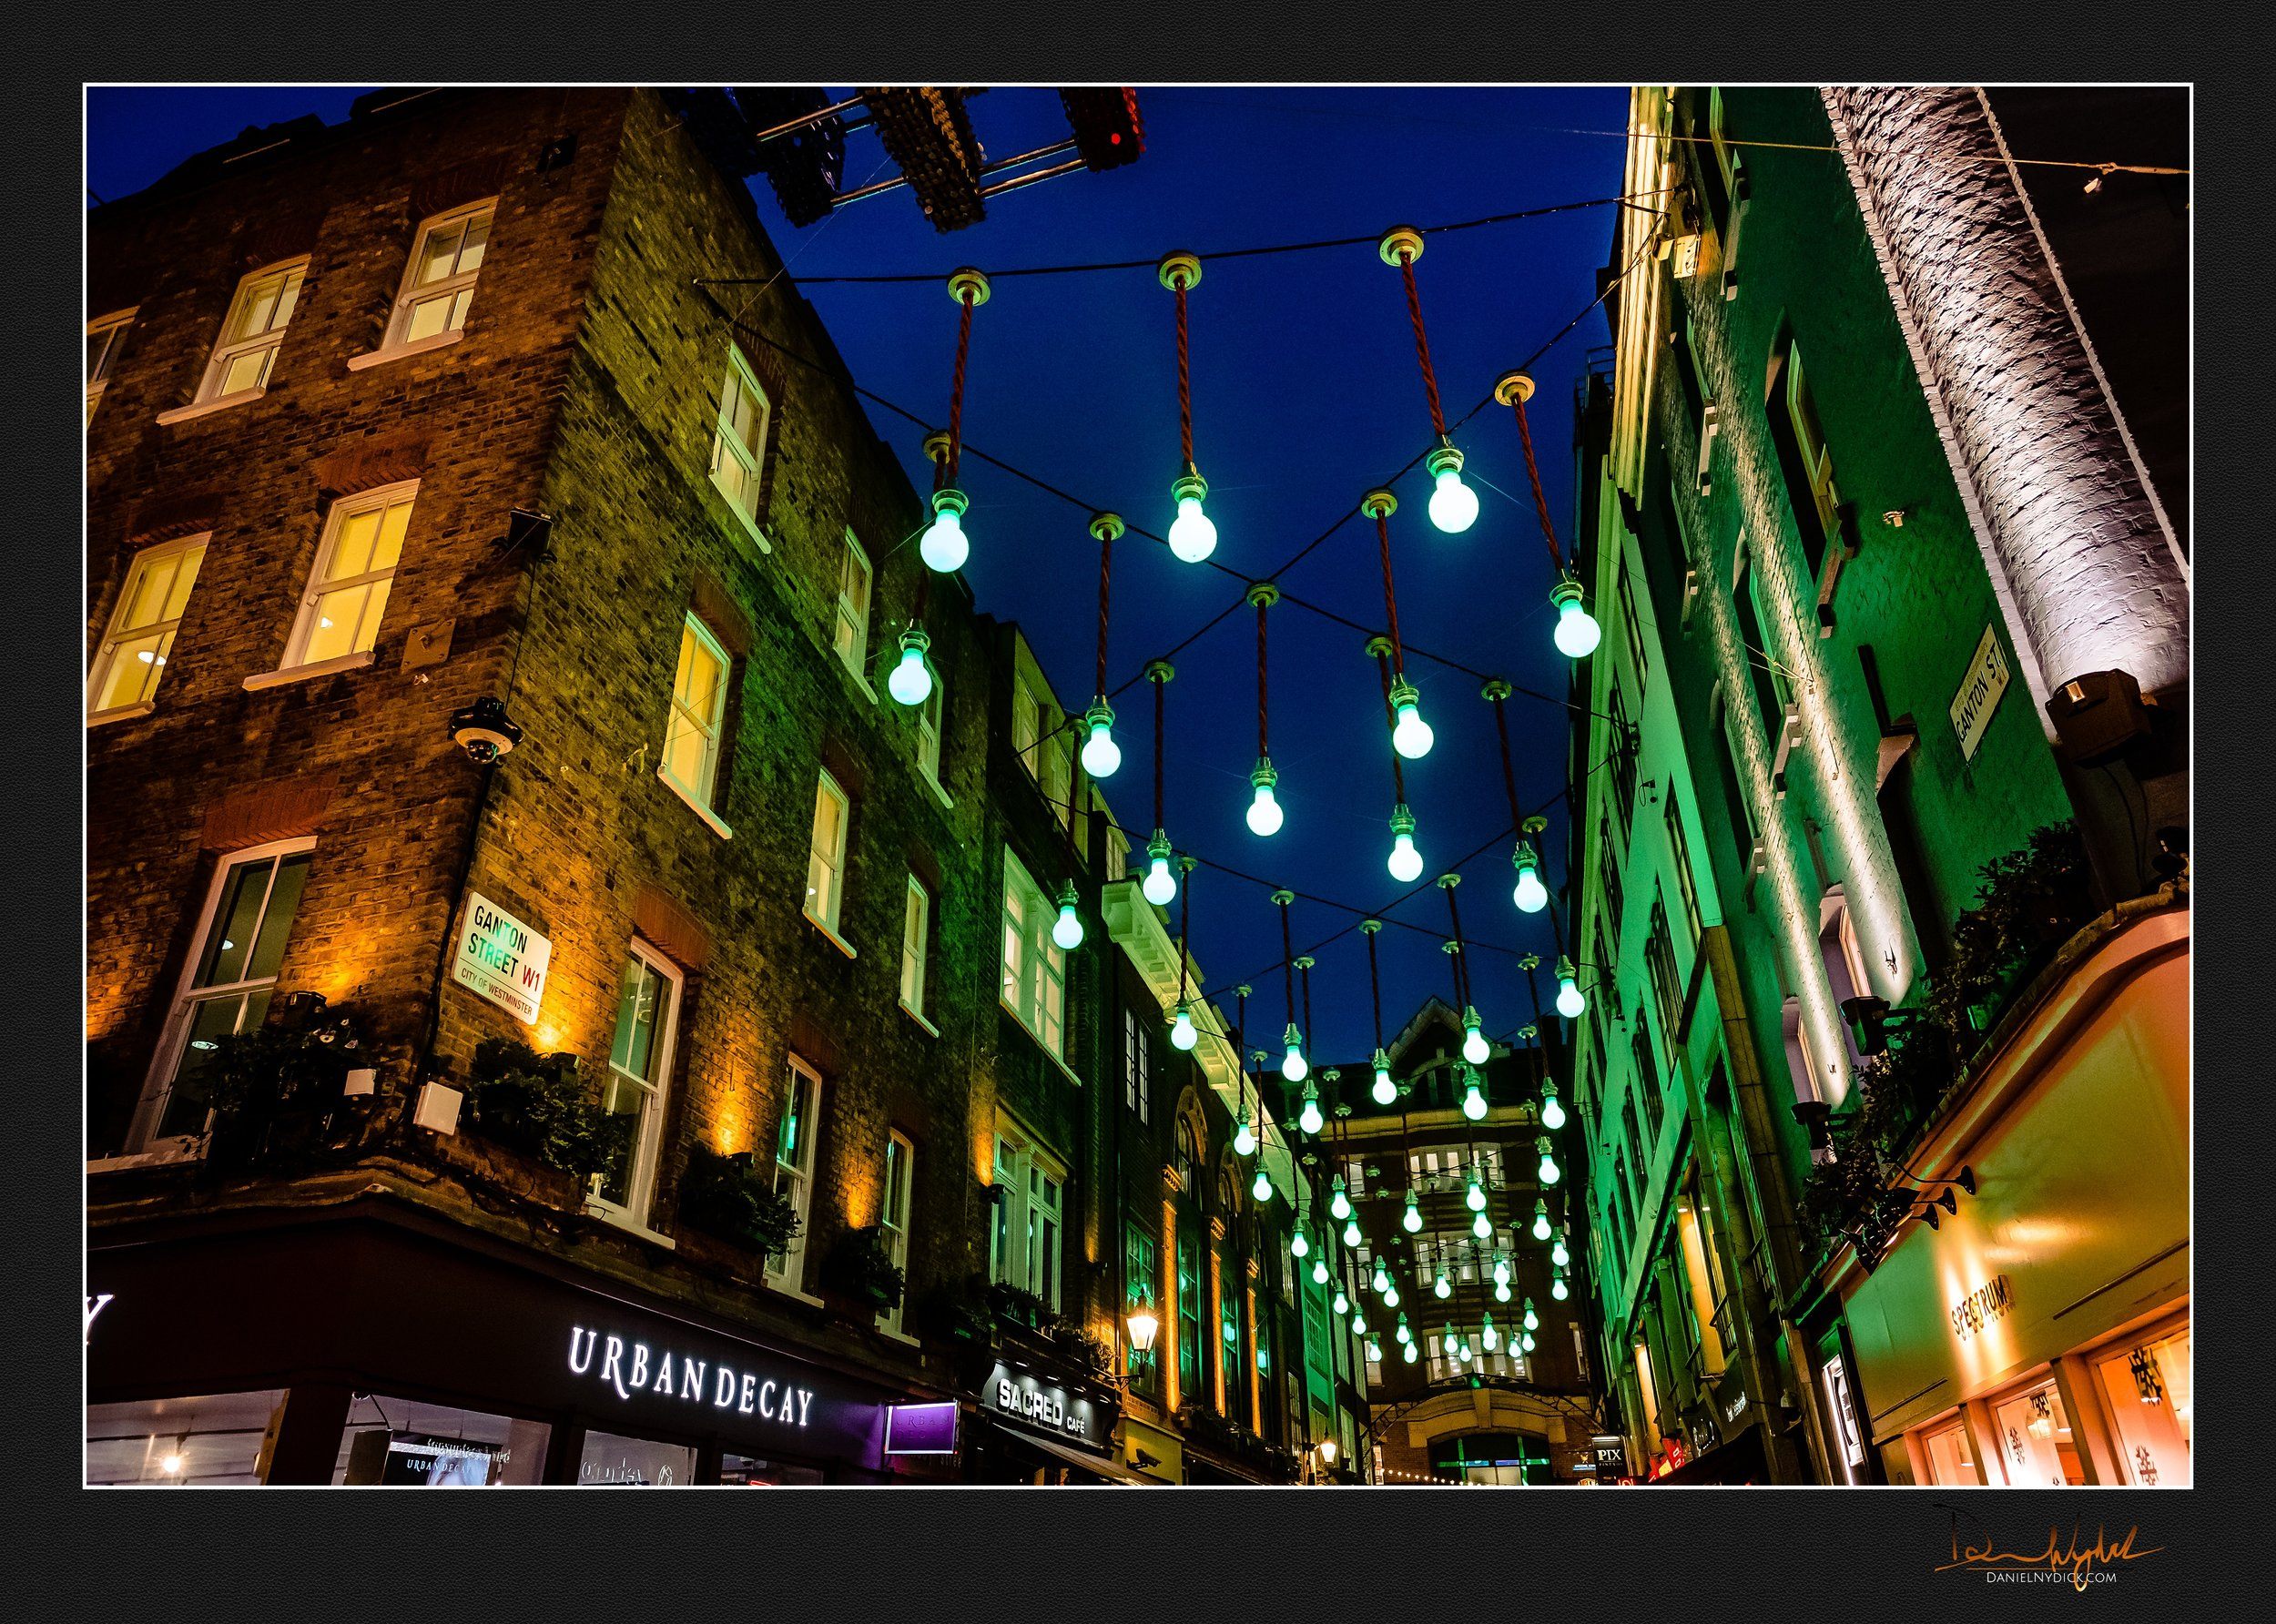 carnaby at night time, urban decay, green lights, architecture